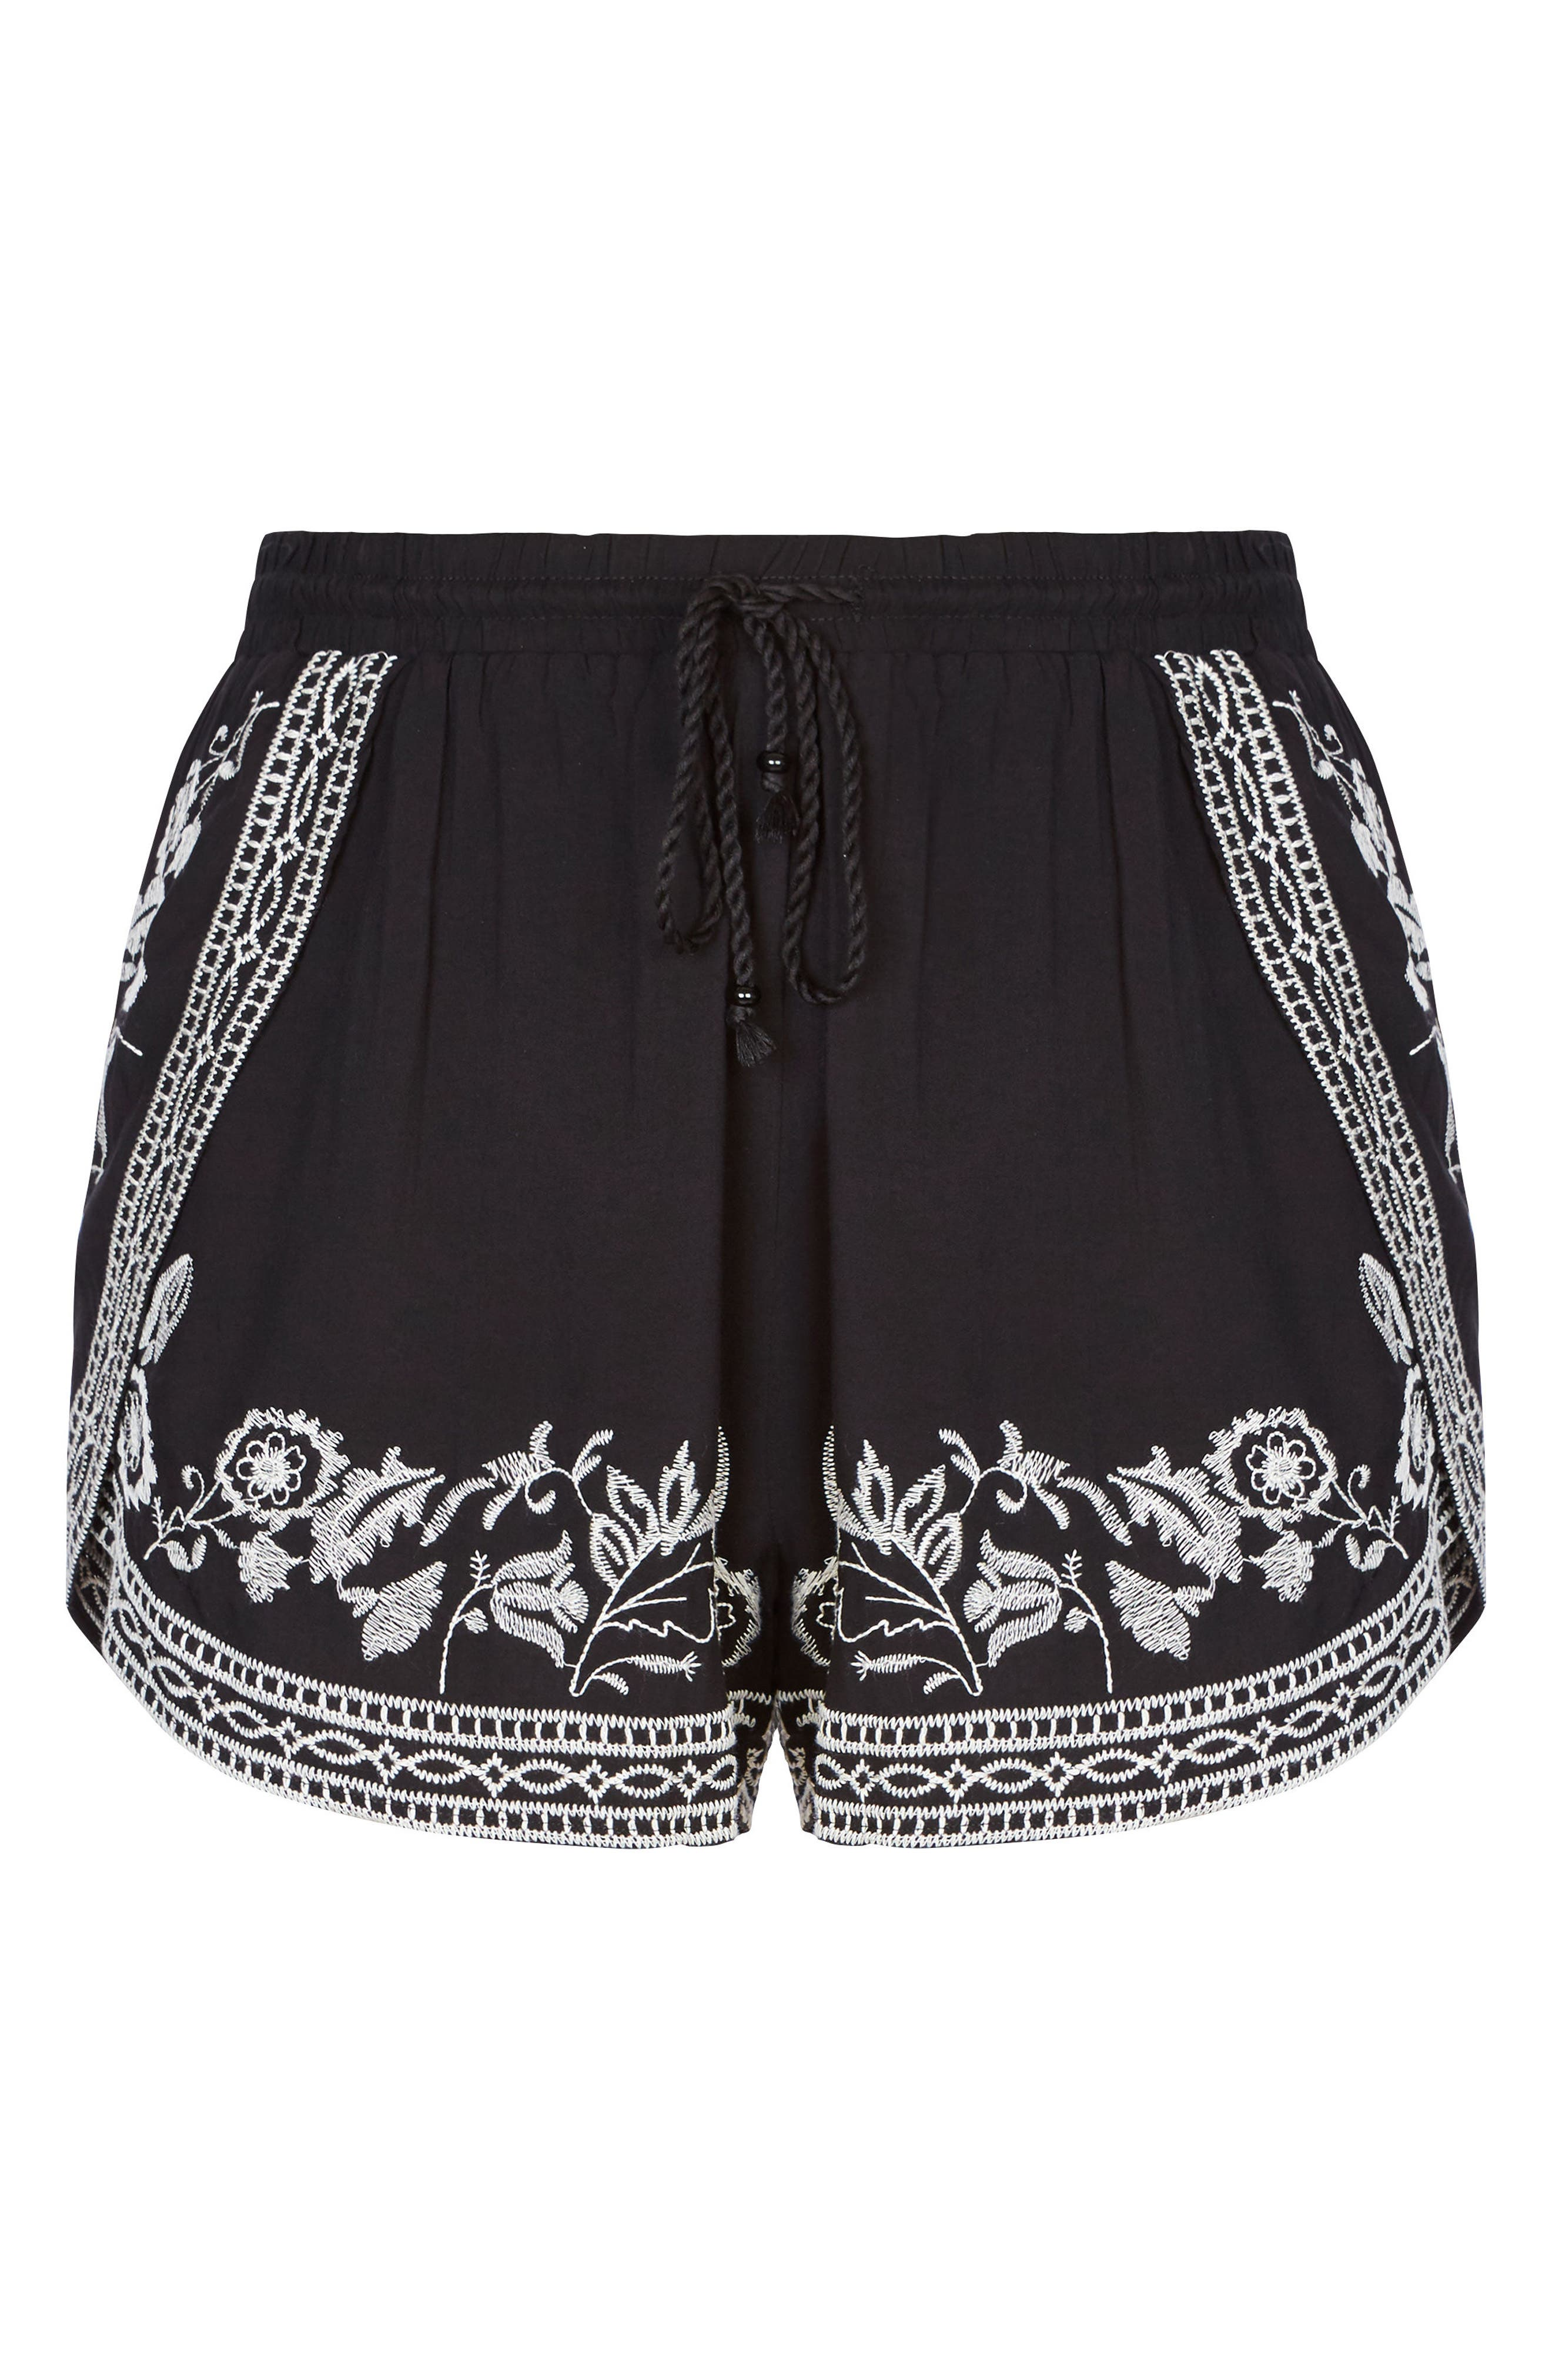 Stella Embroidered Shorts,                             Alternate thumbnail 3, color,                             001